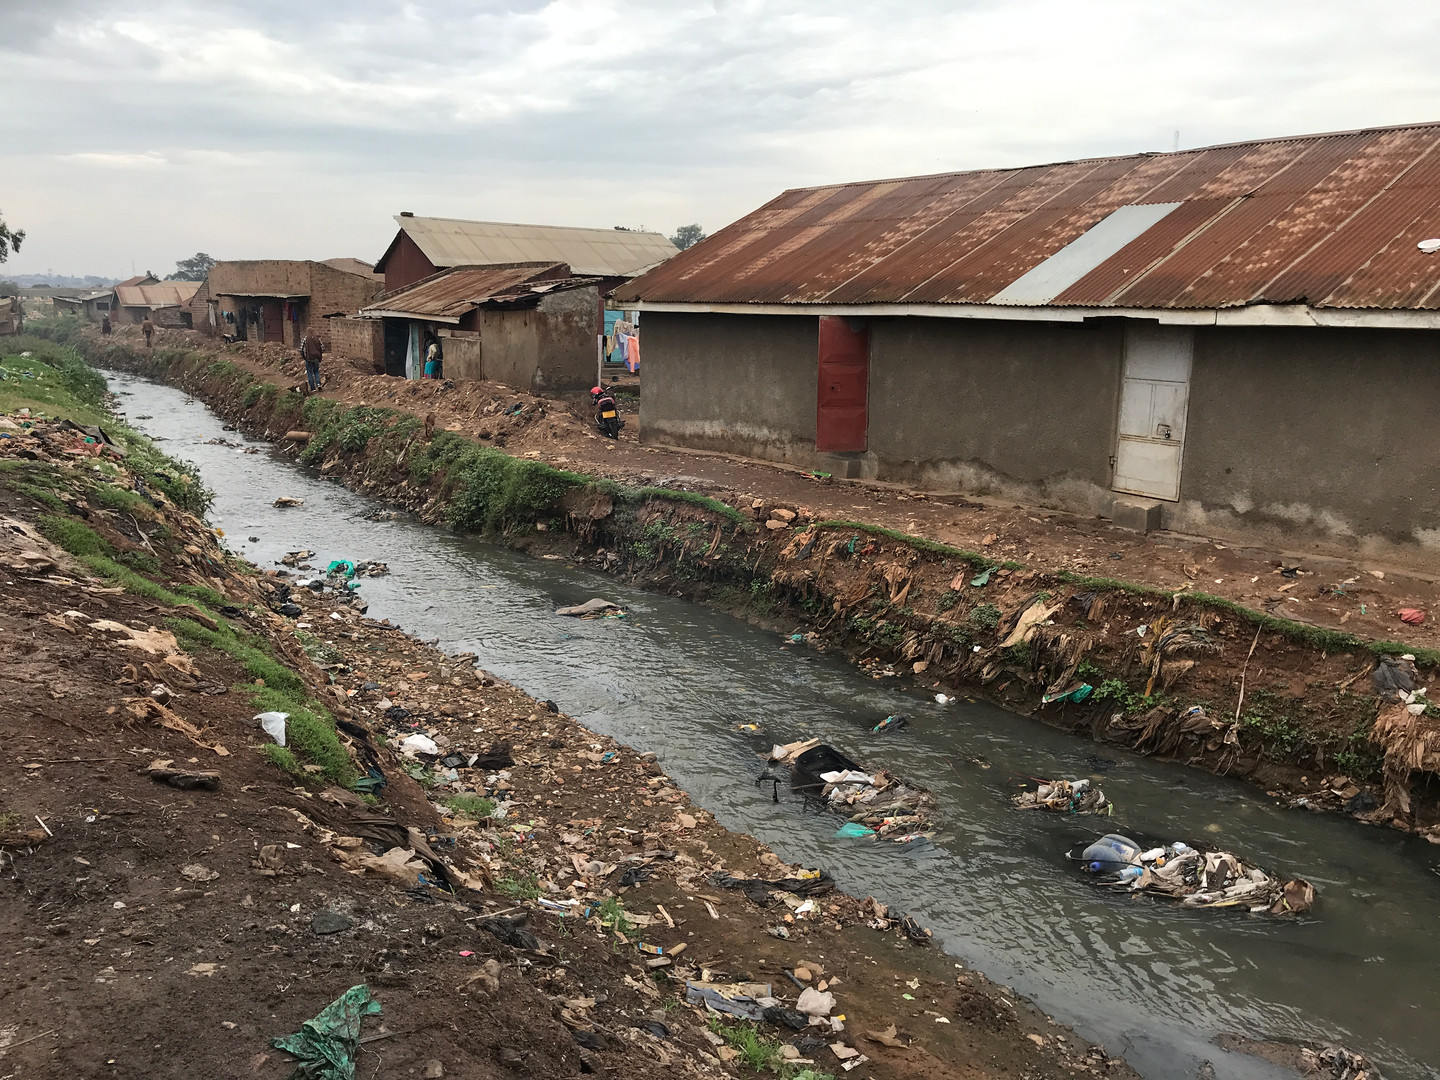 A polluted stream near housing in Kampala. Samples are collected from streams like these and tested for E. coli to measure fecal contamination.